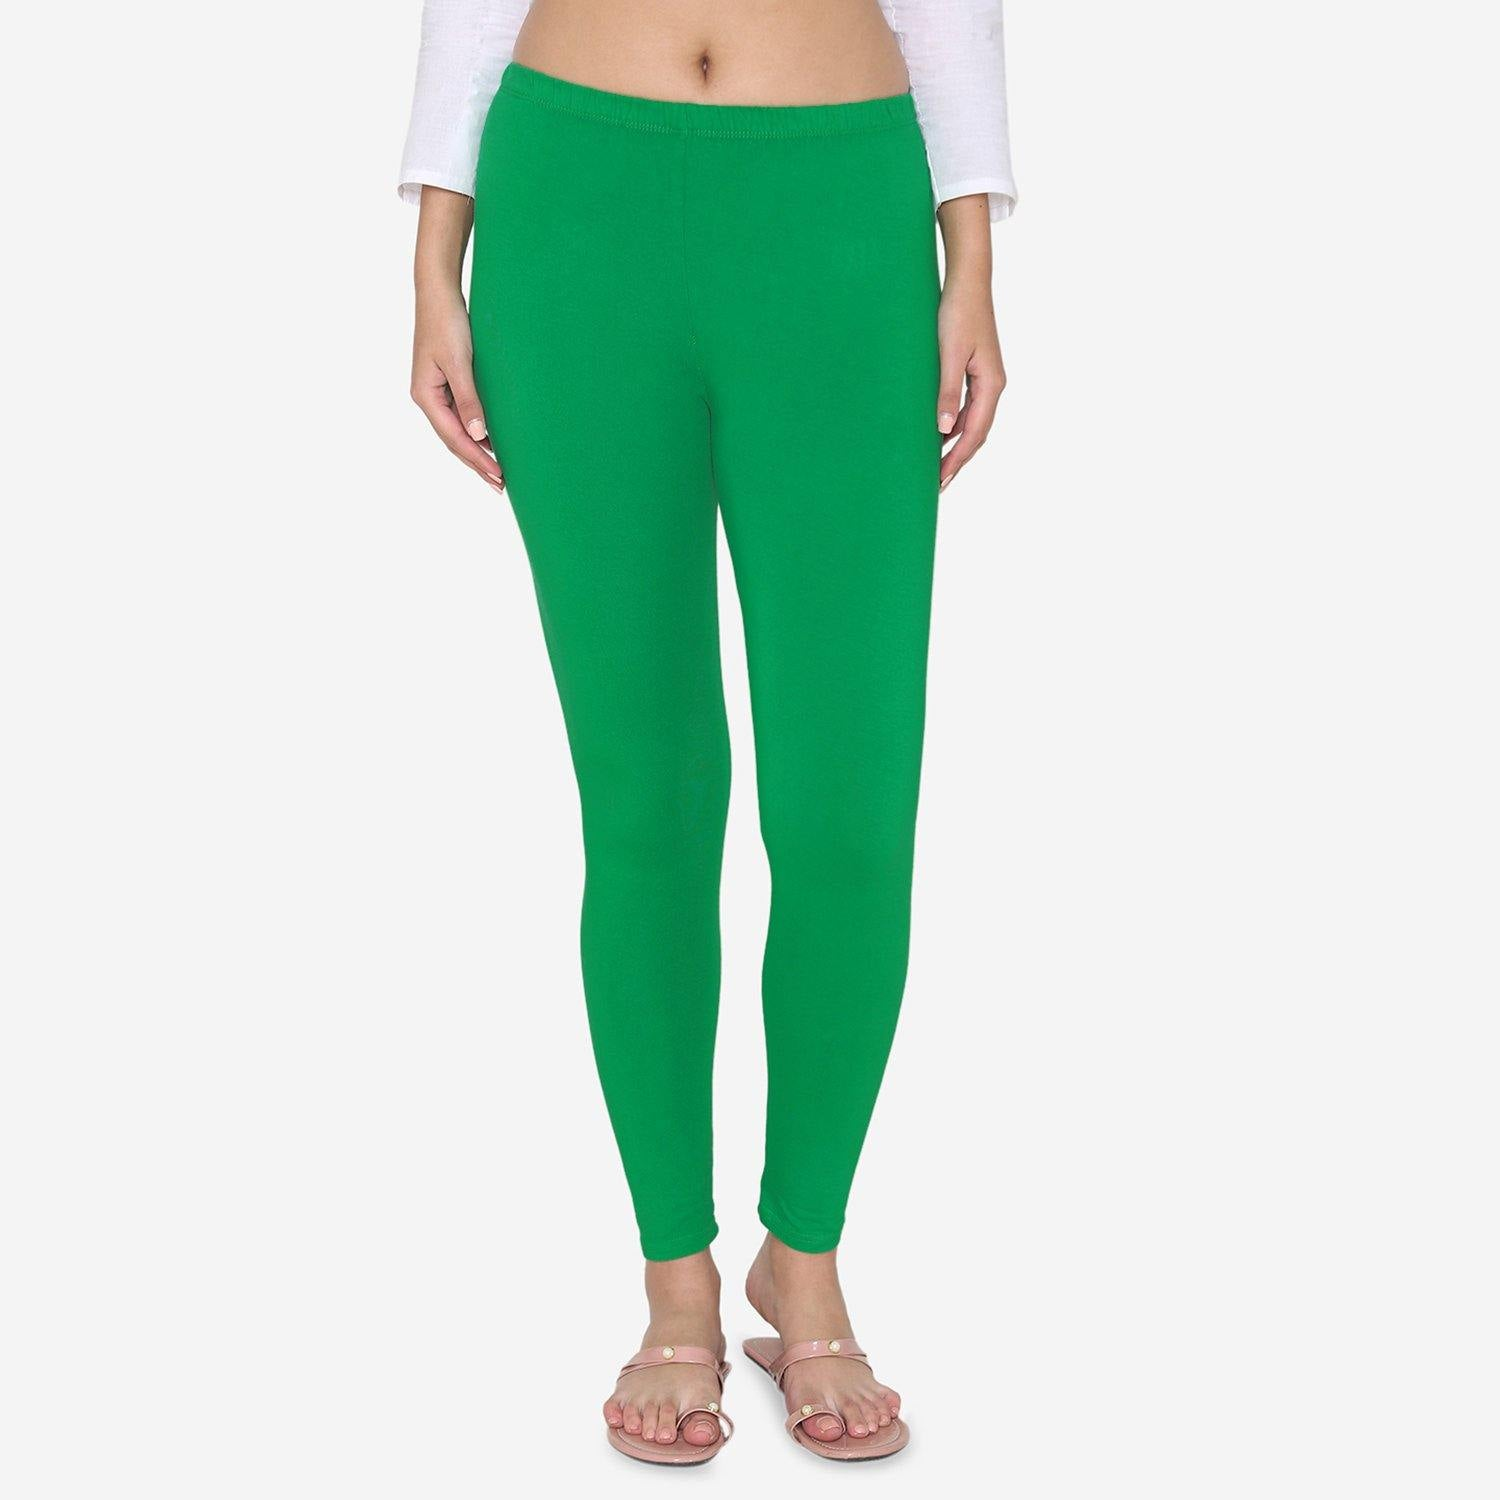 Plain Ankle Leggings For Women